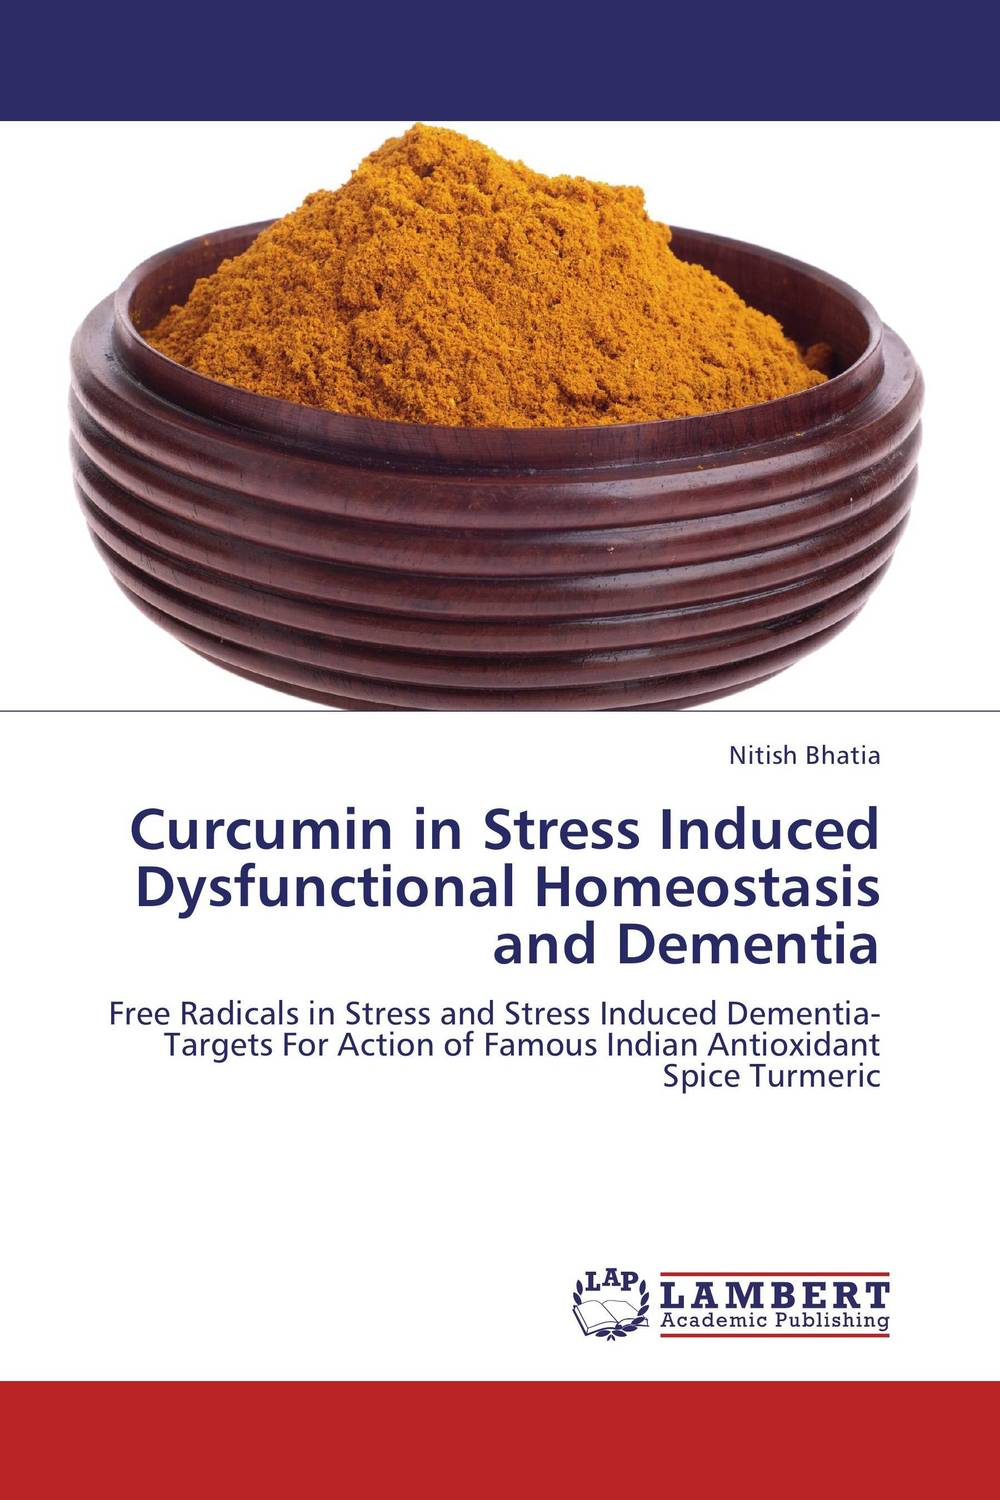 цены  Curcumin in Stress Induced Dysfunctional Homeostasis and Dementia